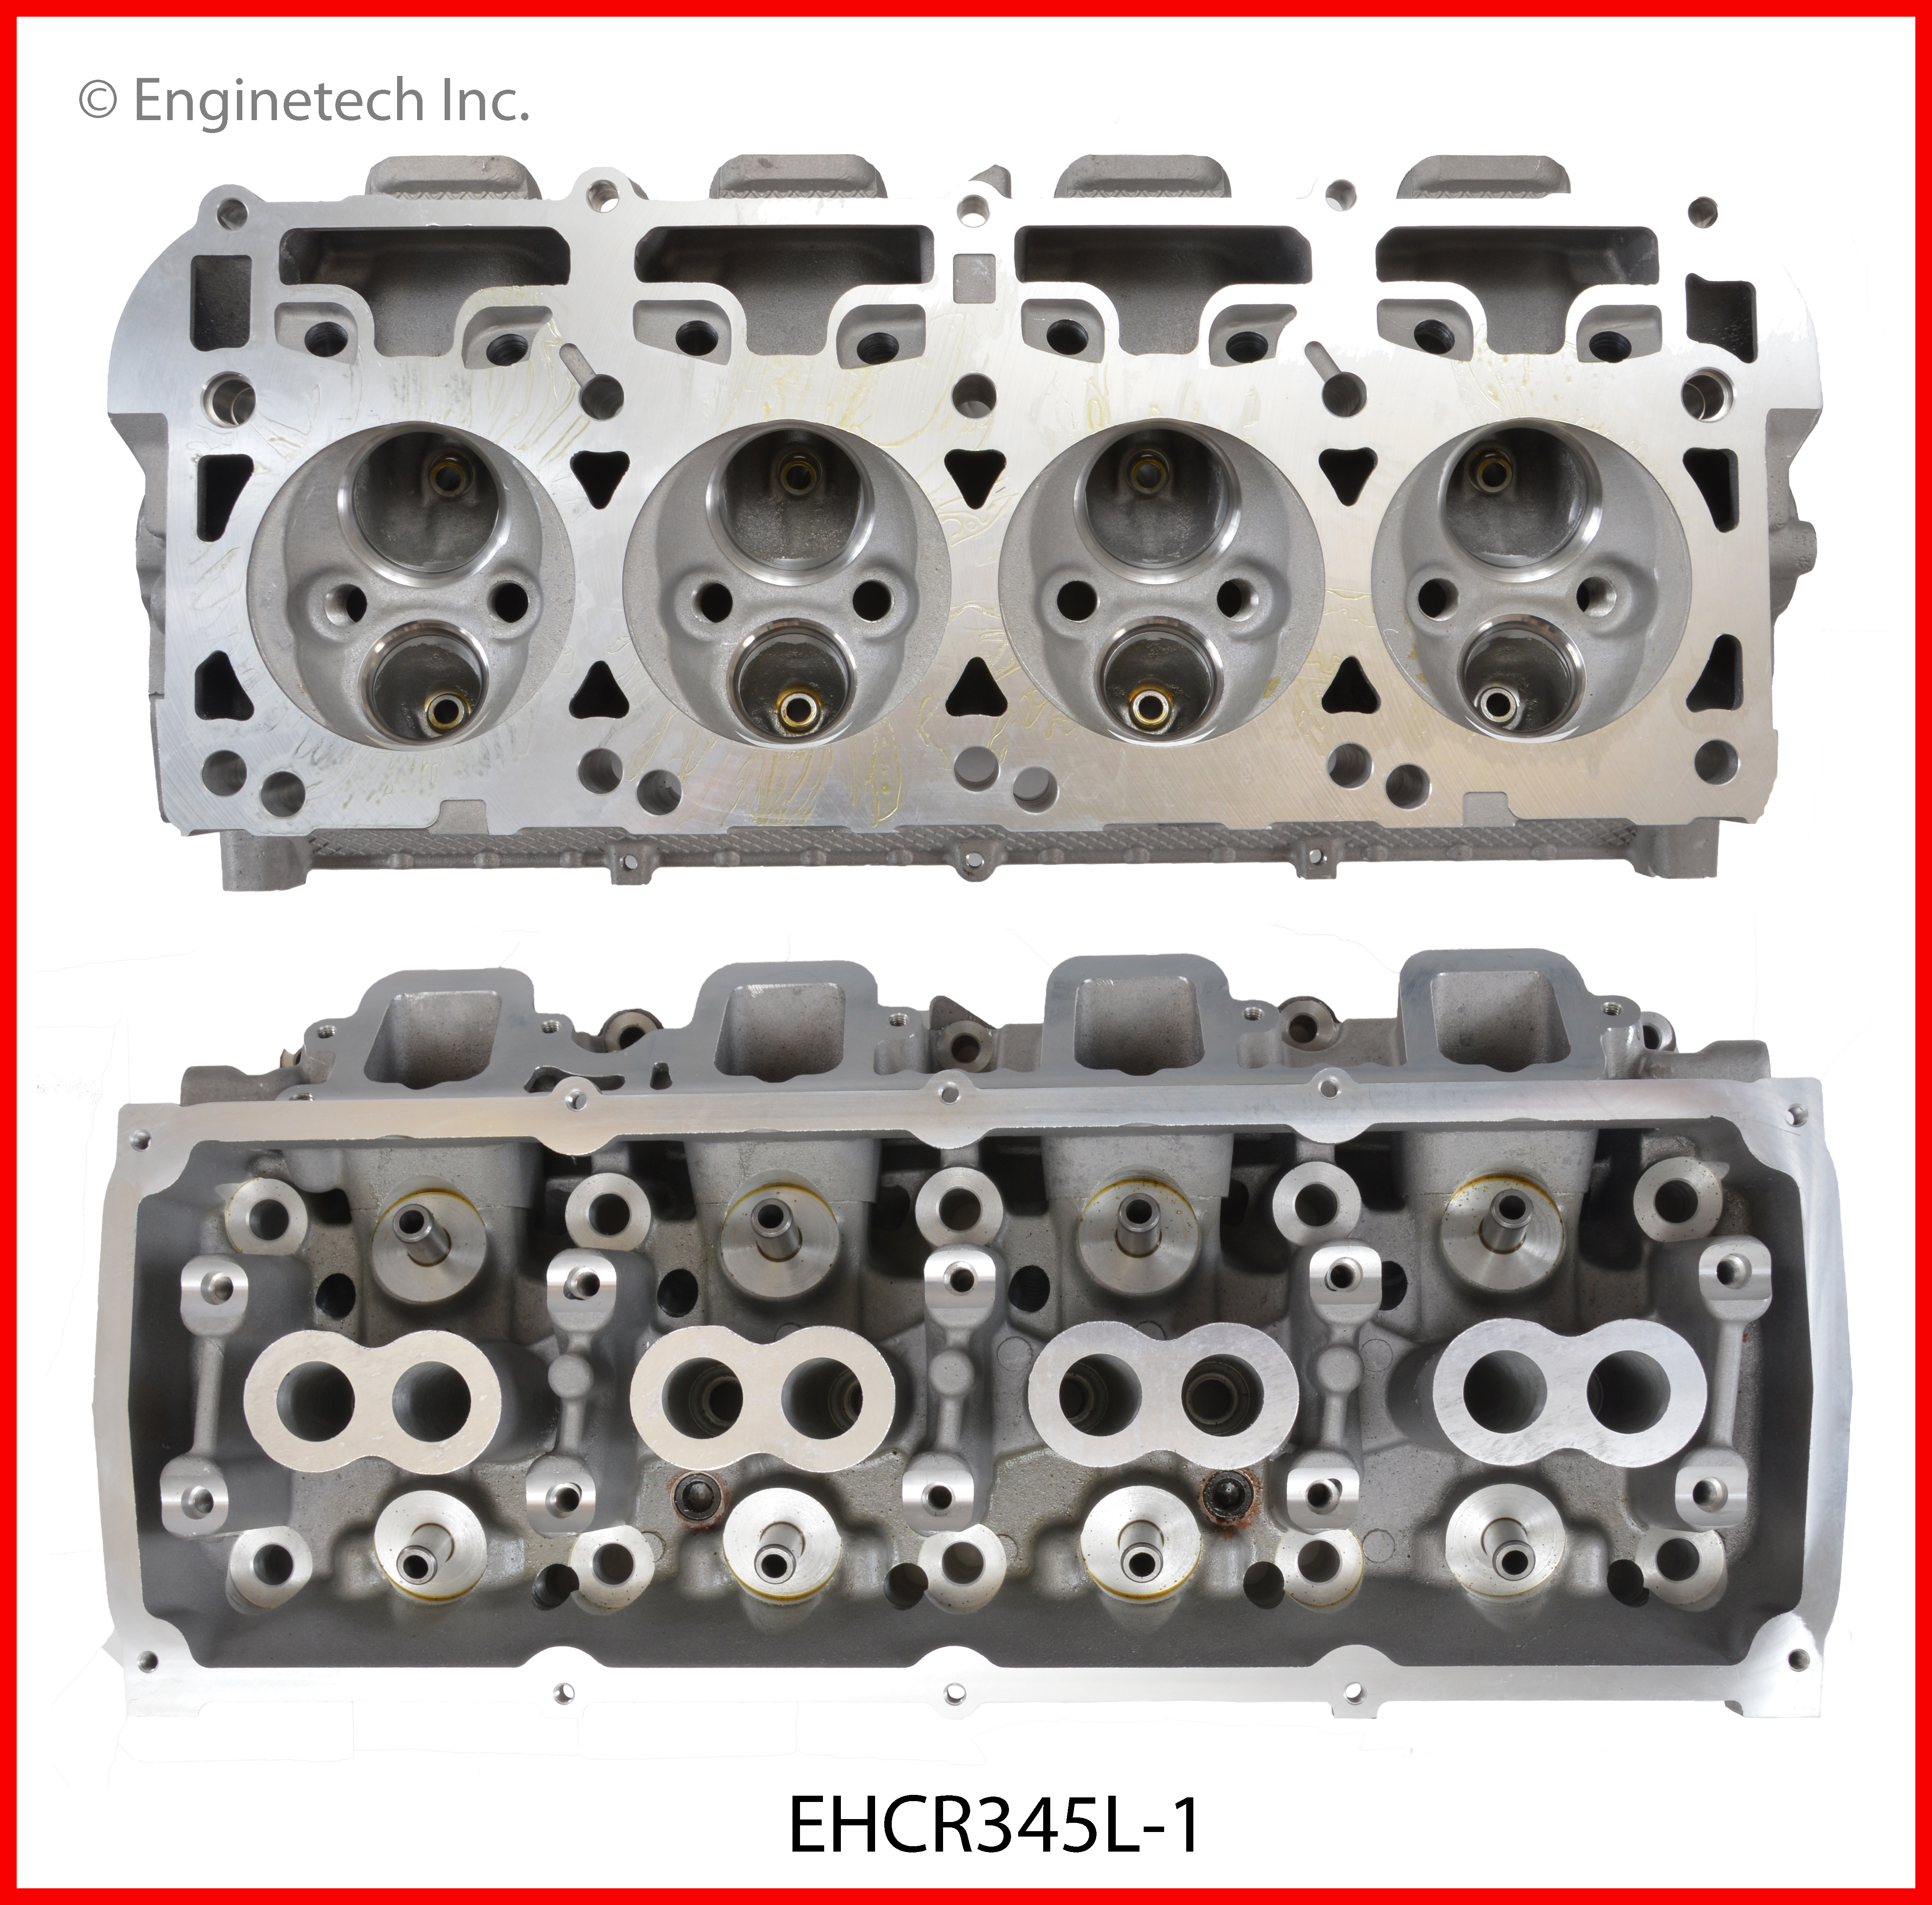 EHCR345L-1 Cylinder Head - Bare Enginetech